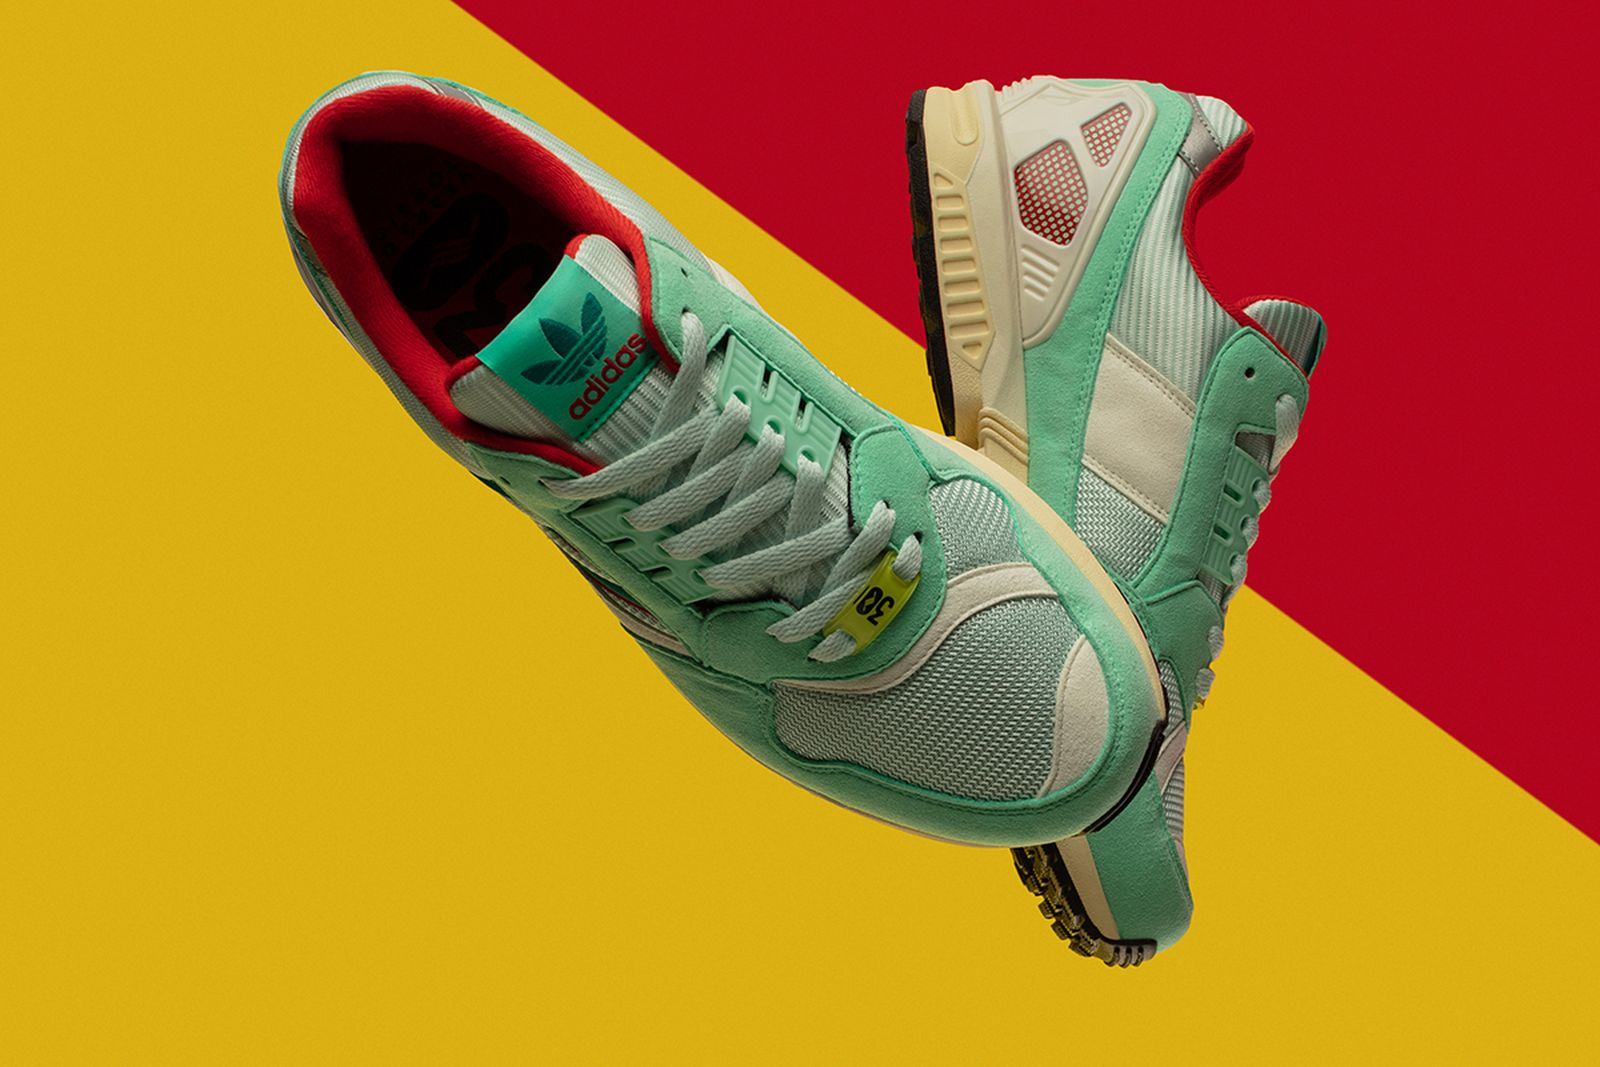 adidas og zx series 30 years of torsion release date price adidas ZX